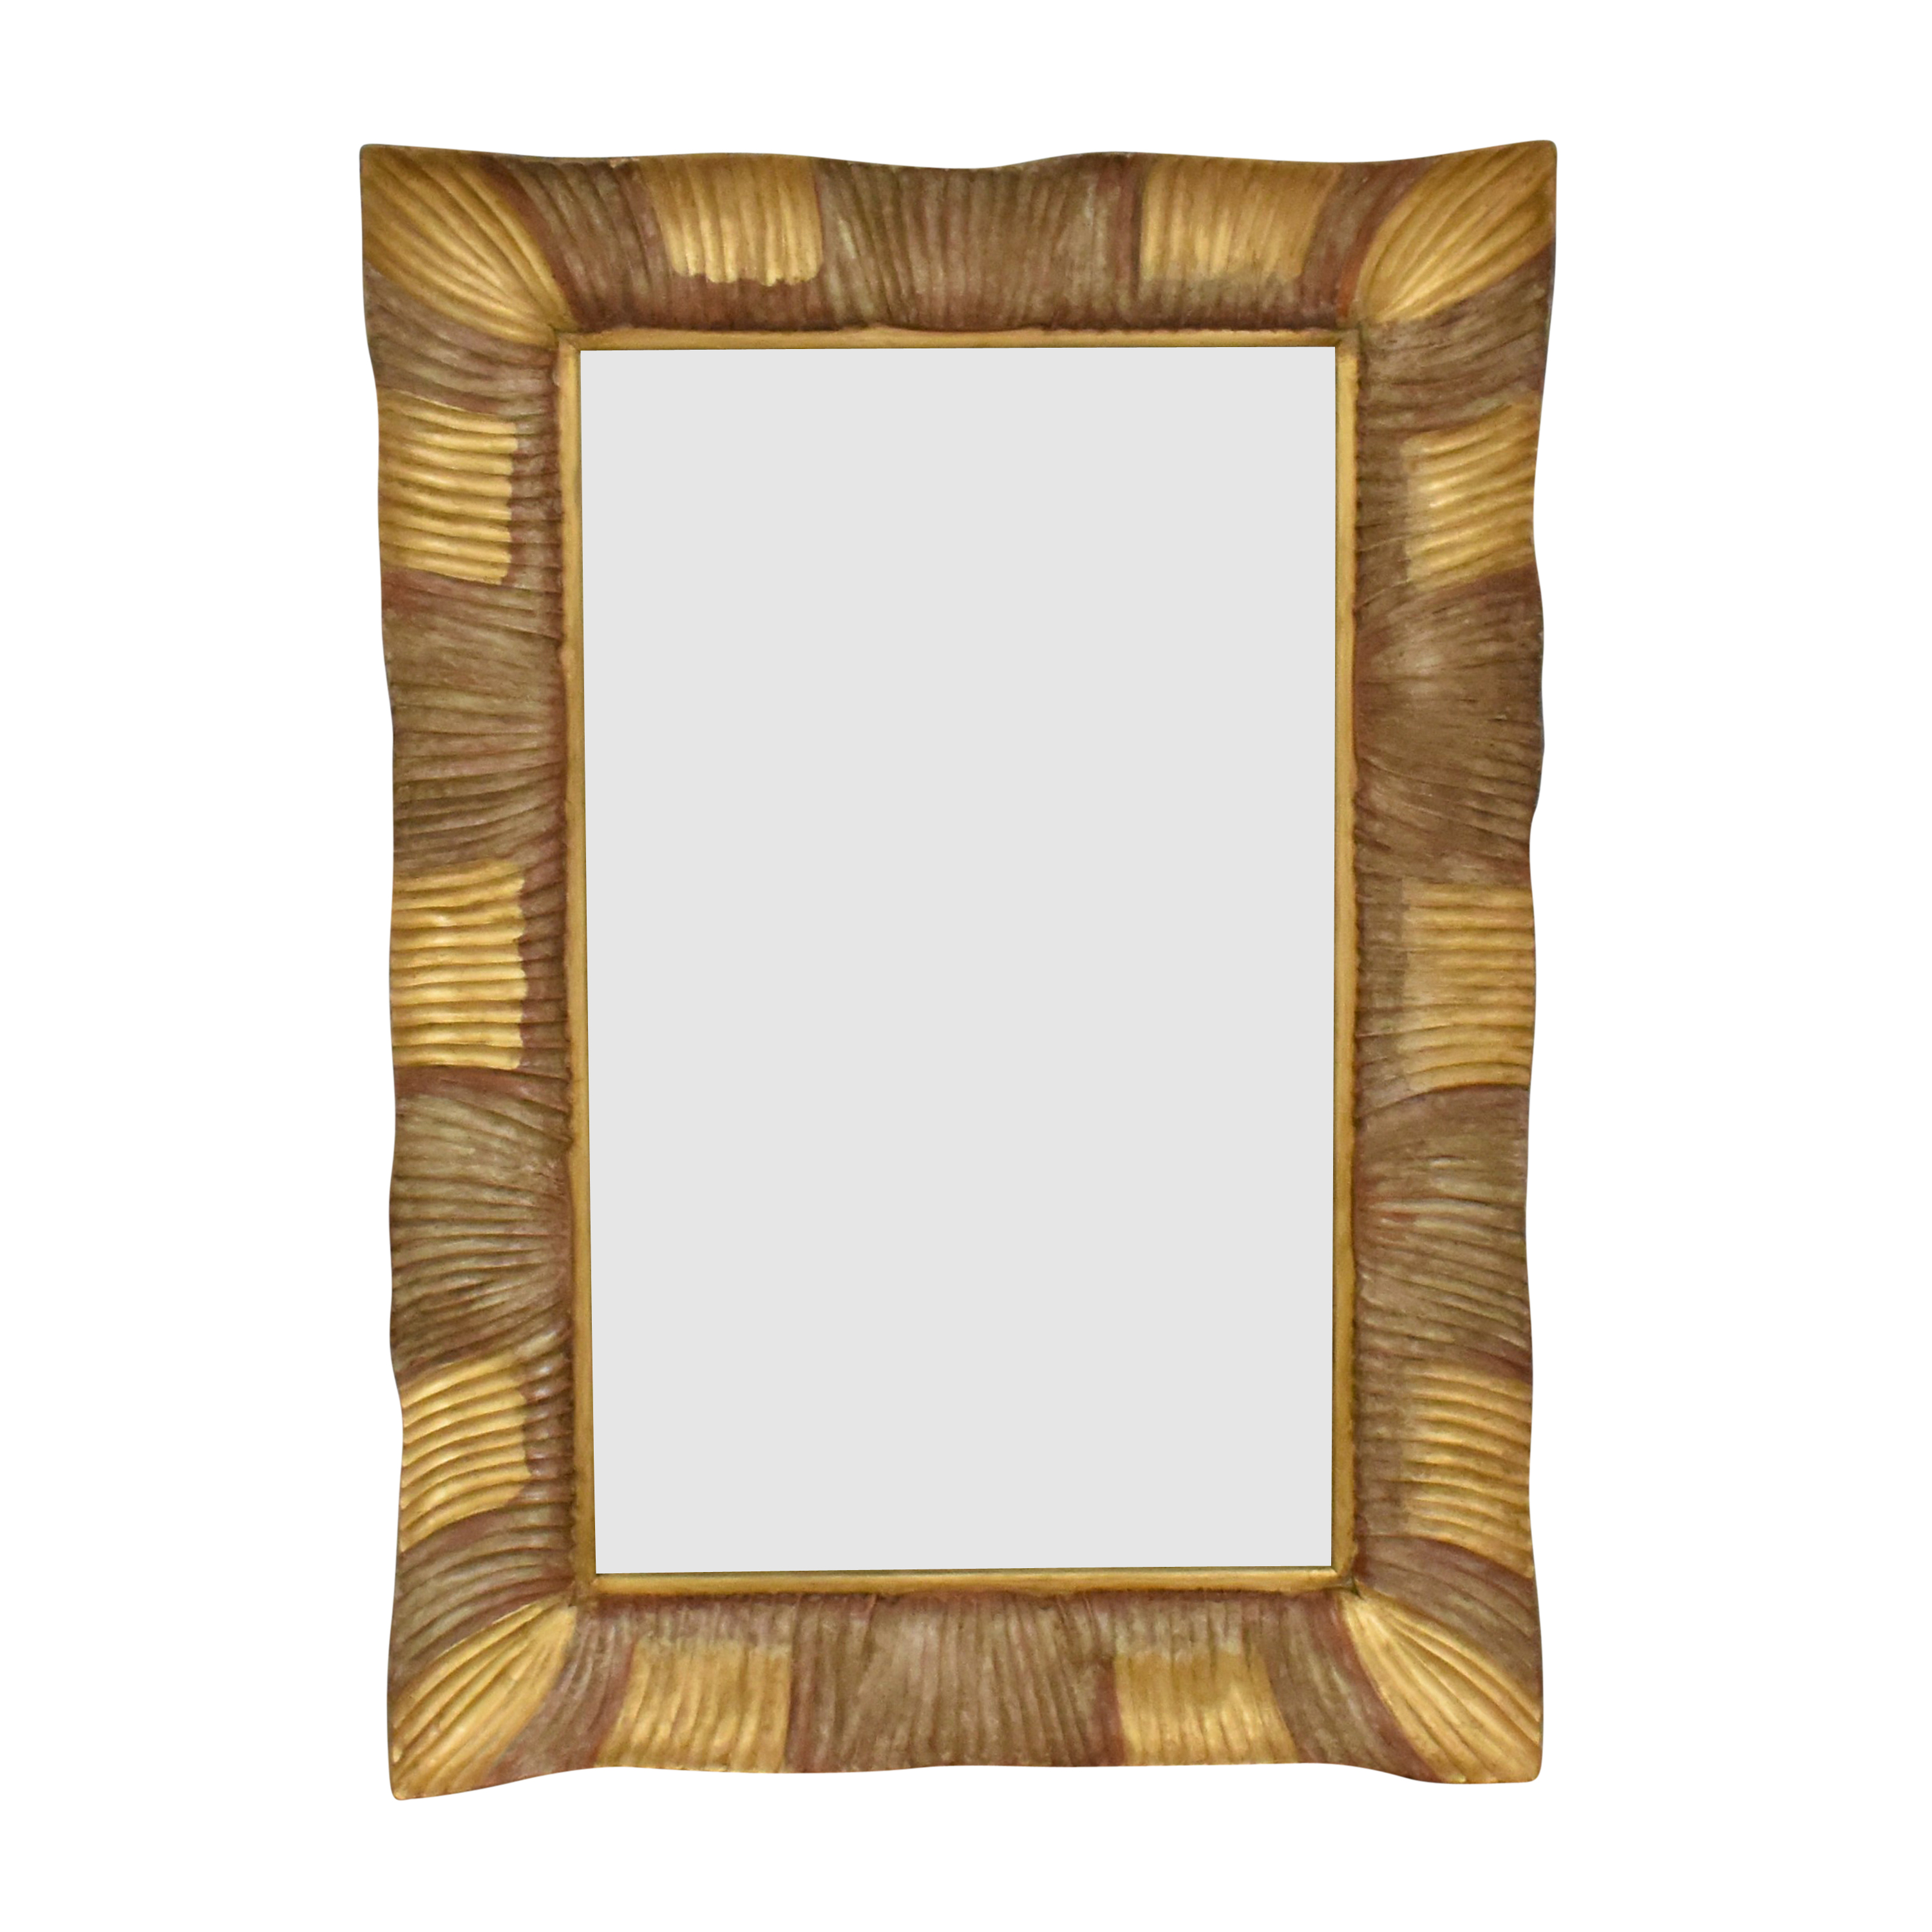 Framed Floor Mirror / Decor